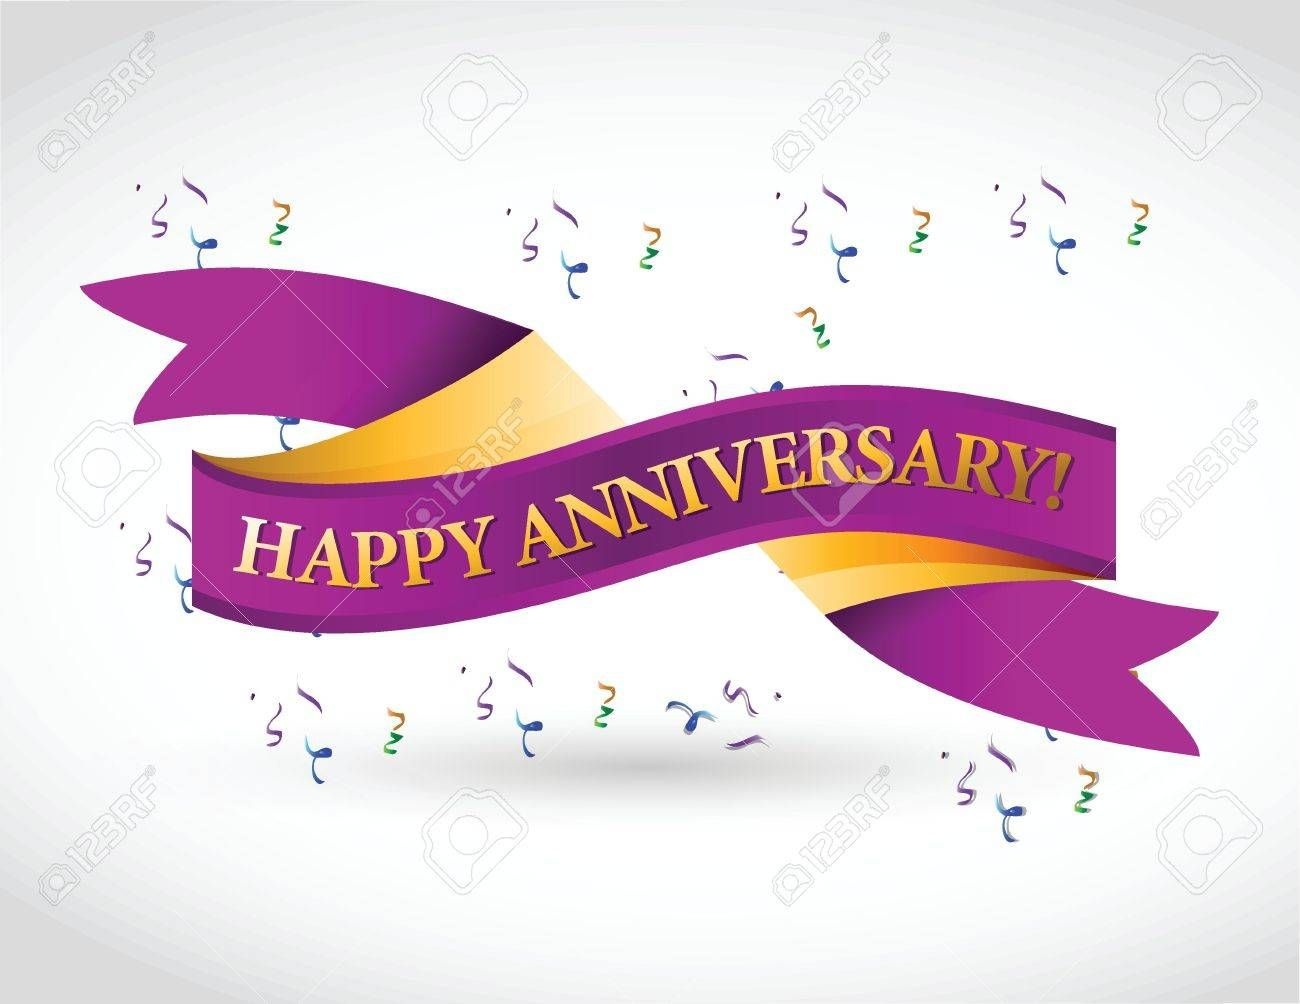 Image Result For Happy Anniversary Happy Anniversary Wishes Happy Anniversary Anniversary